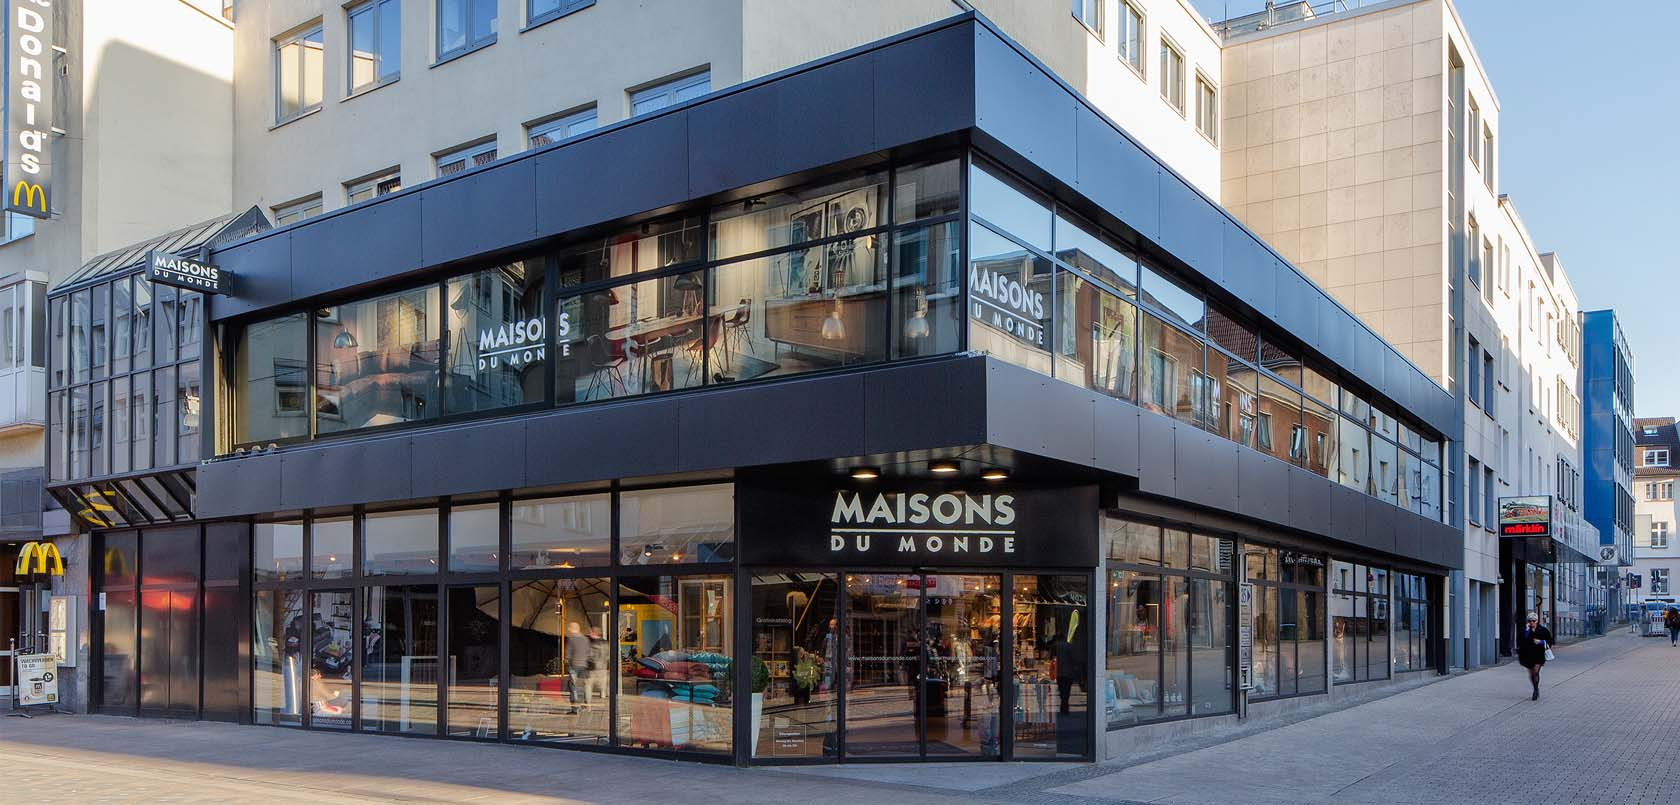 Affordable maisons du monde store in dortmund germany with for Logo maison du monde